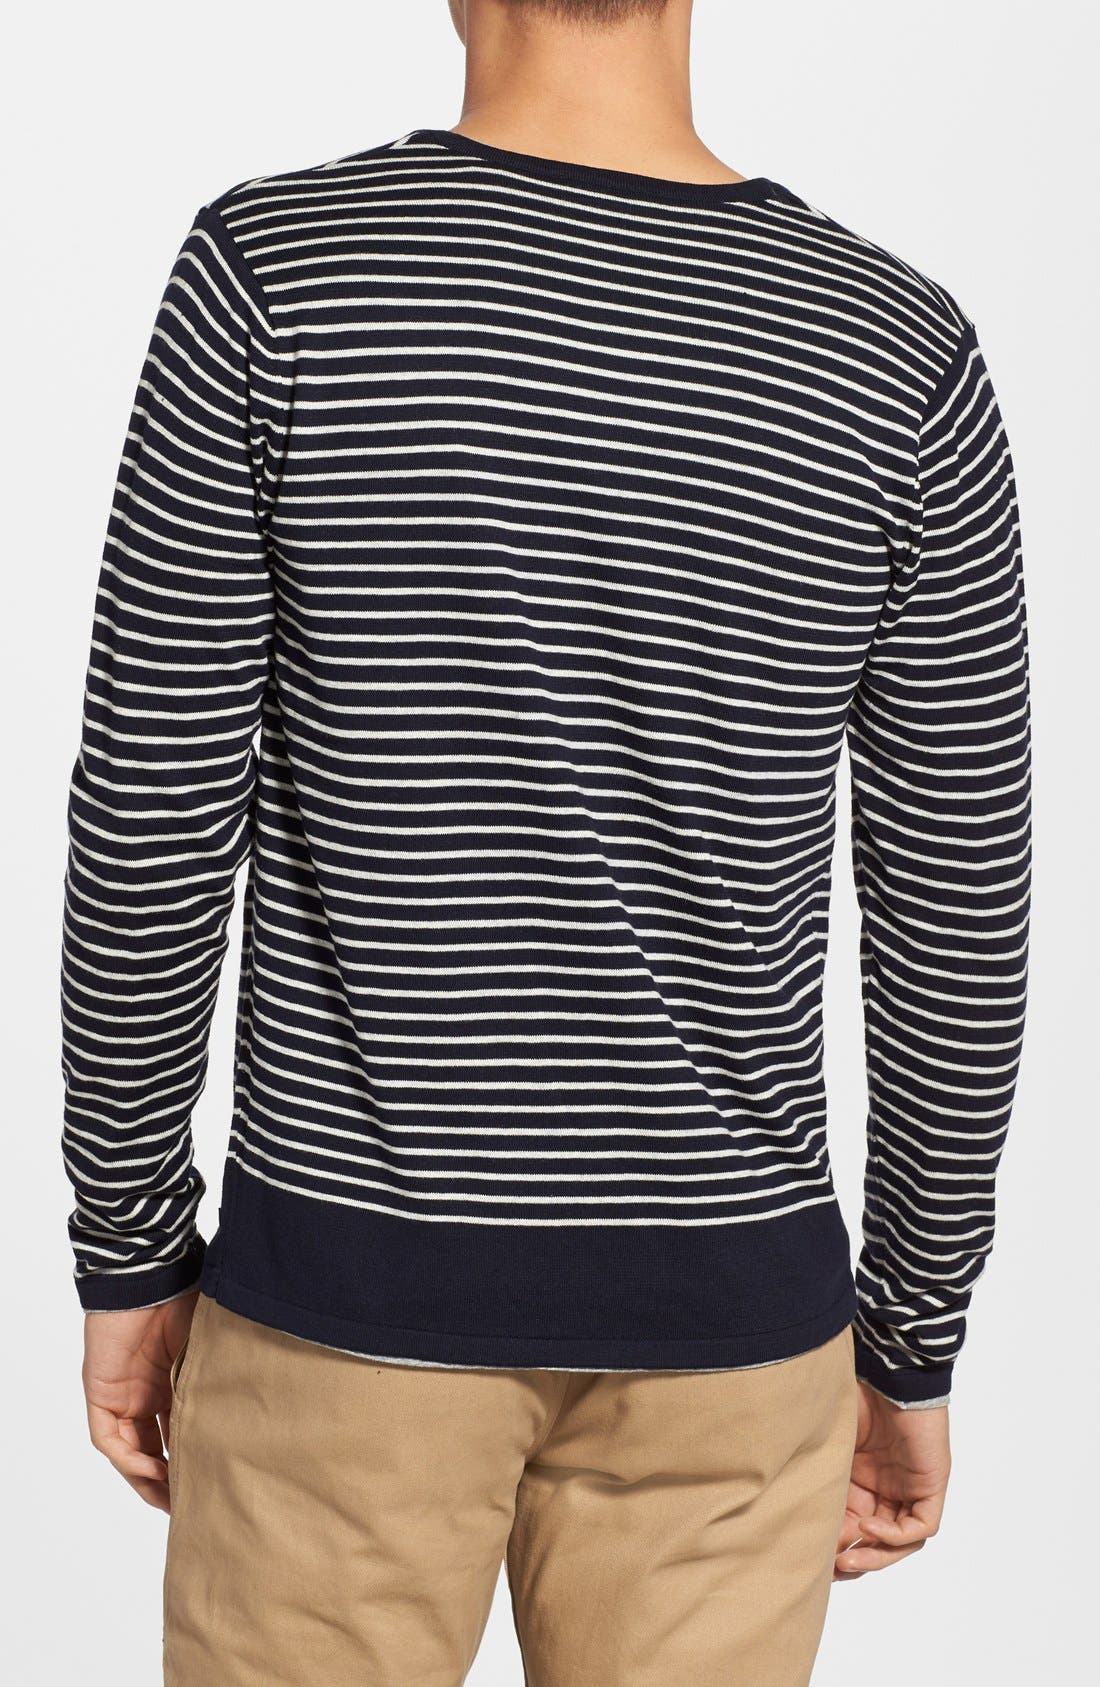 SCOTCH & SODA,                             'Granded' Stripe Henley Sweater with T-Shirt,                             Alternate thumbnail 2, color,                             400